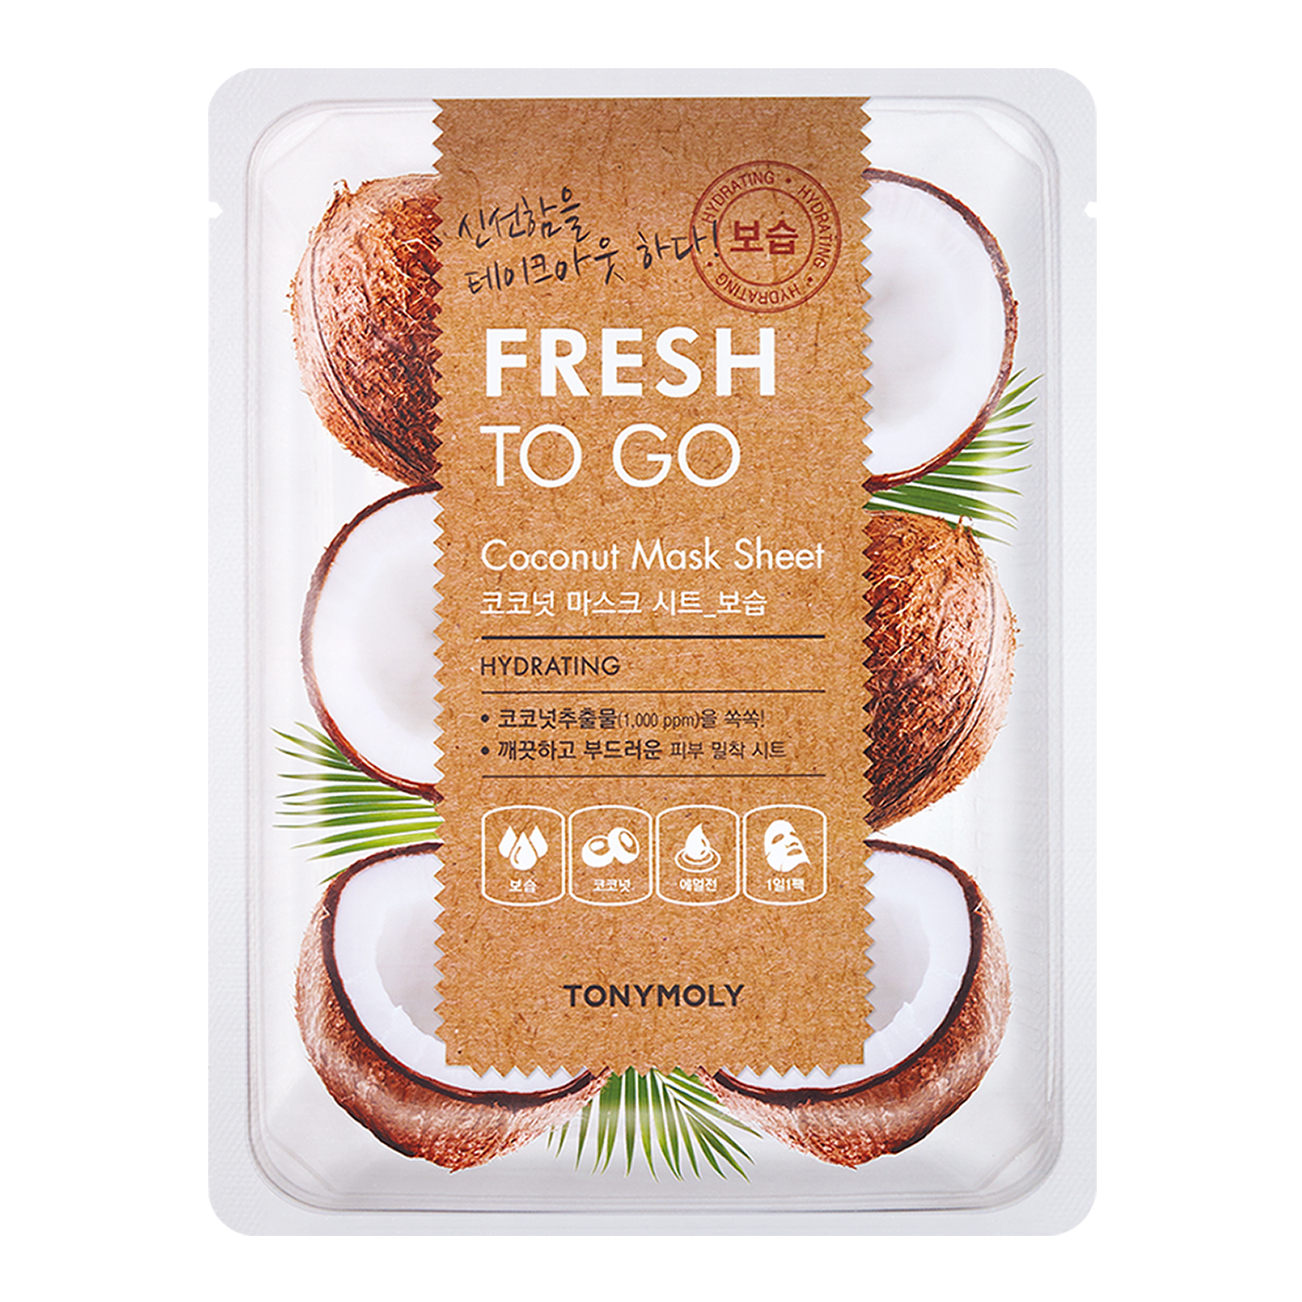 mat-na-tony-moly-fresh-to-go-mask-sheet-coconut-review-thanh-phan-gia-cong-dung-63